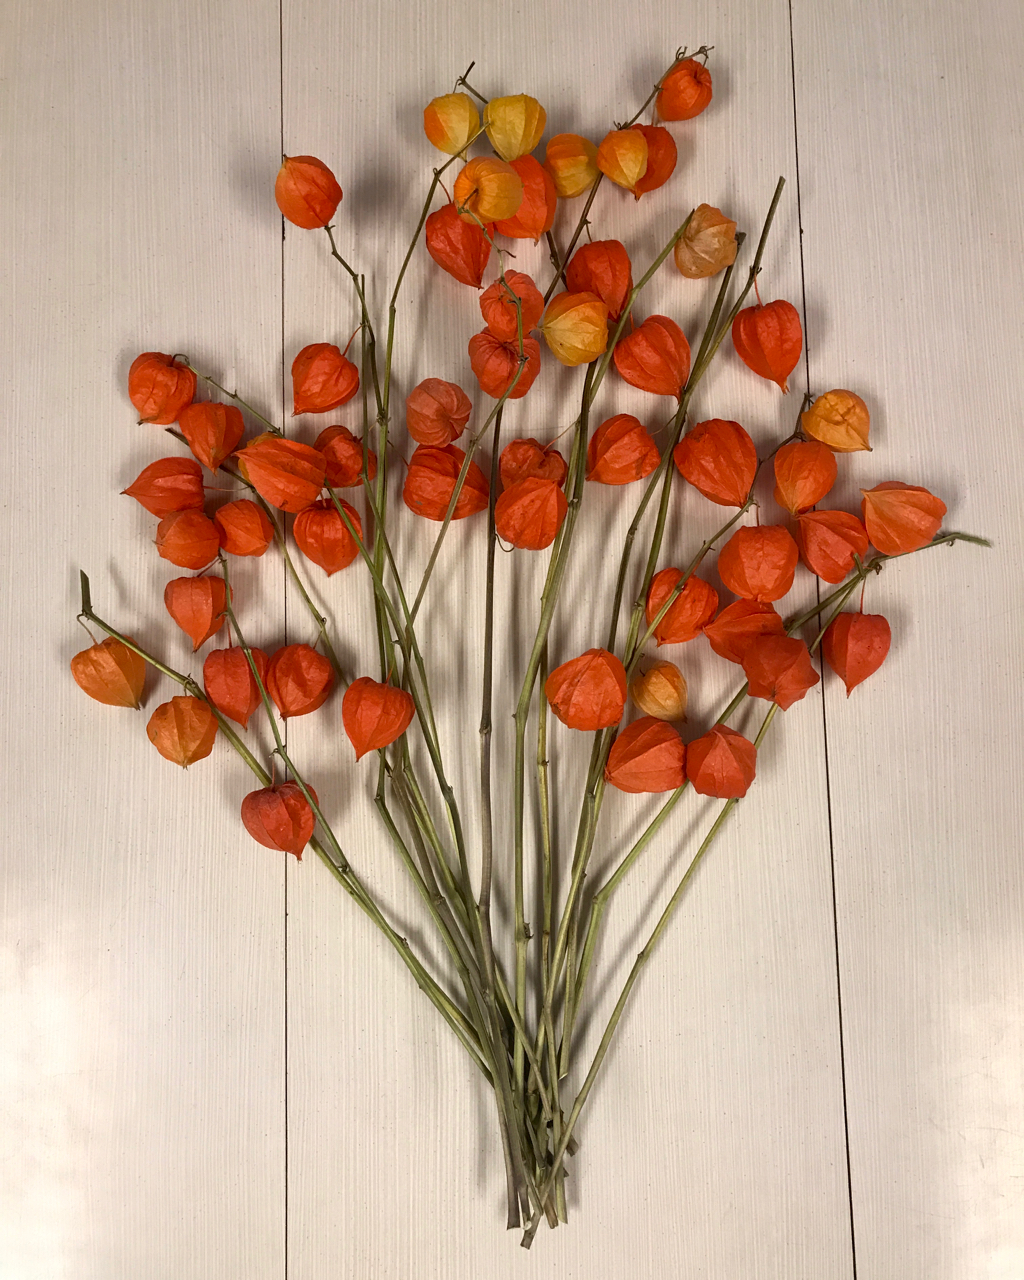 Chinese Lanterns Physalis Alkekengi